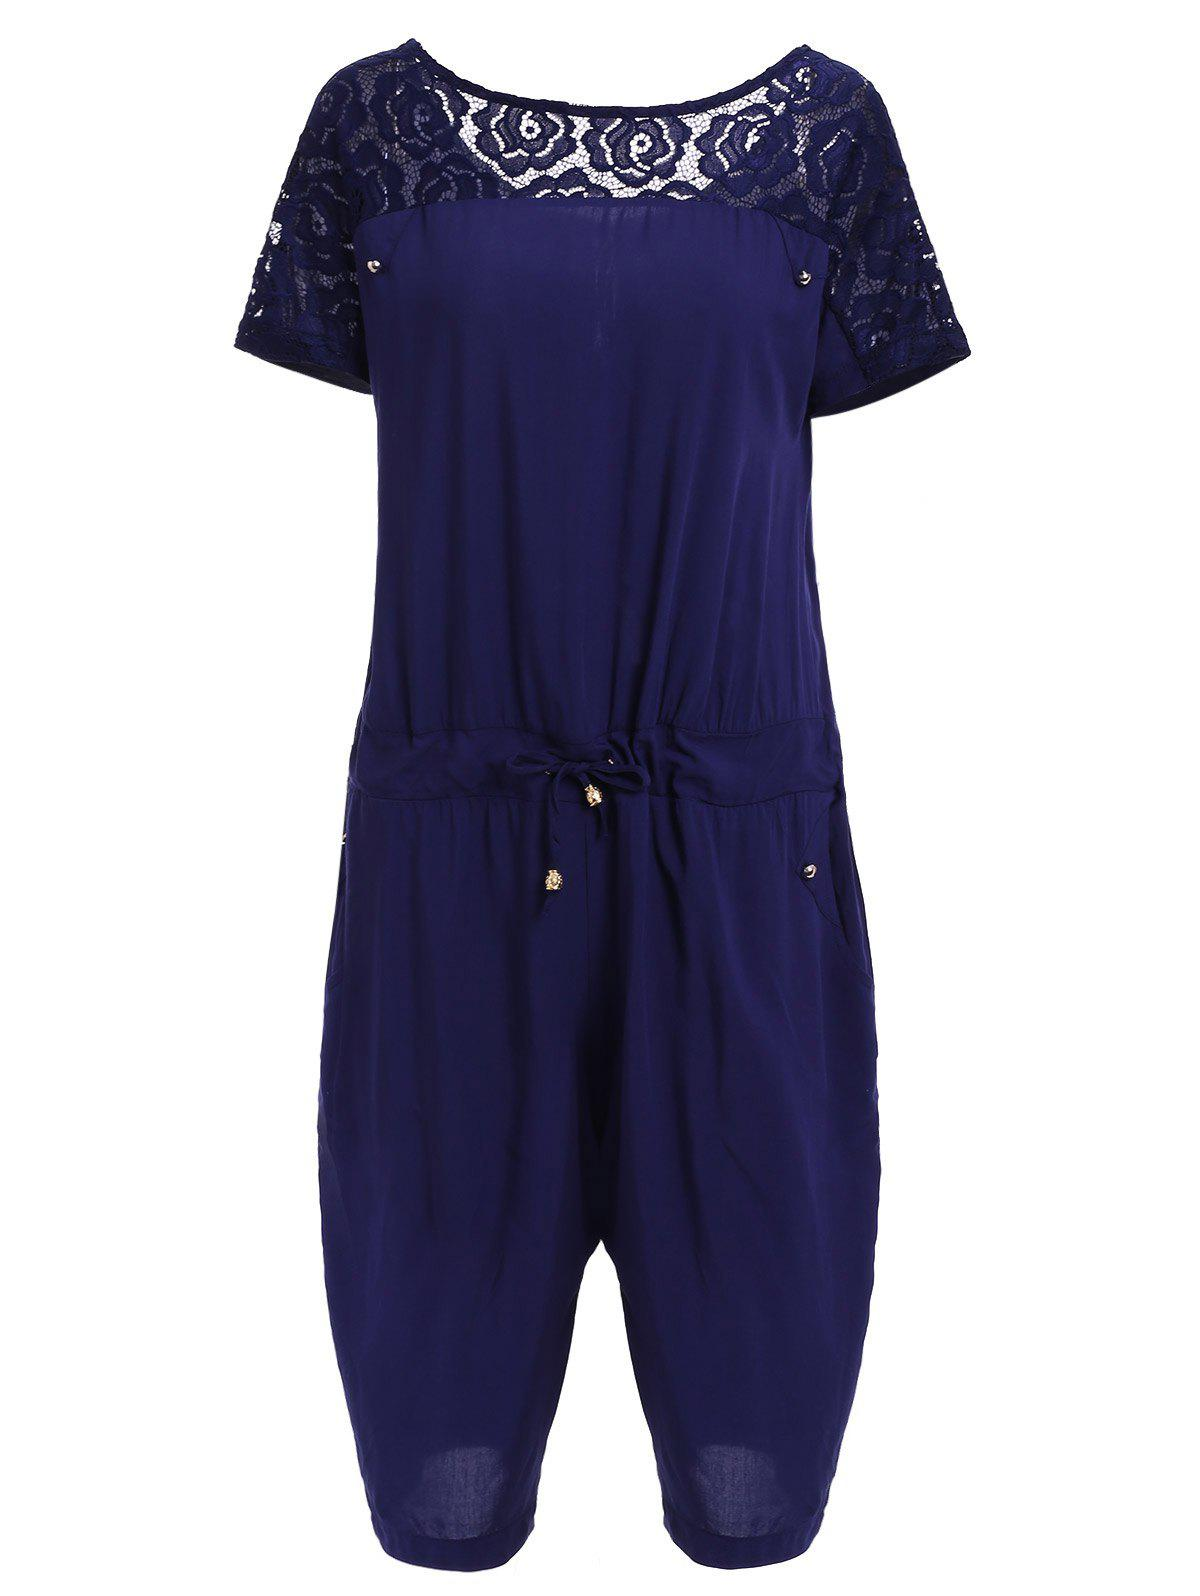 Casual Style Round Neck Short Sleeve Lace Spliced Plus Size Women's Romper - PURPLISH BLUE 5XL